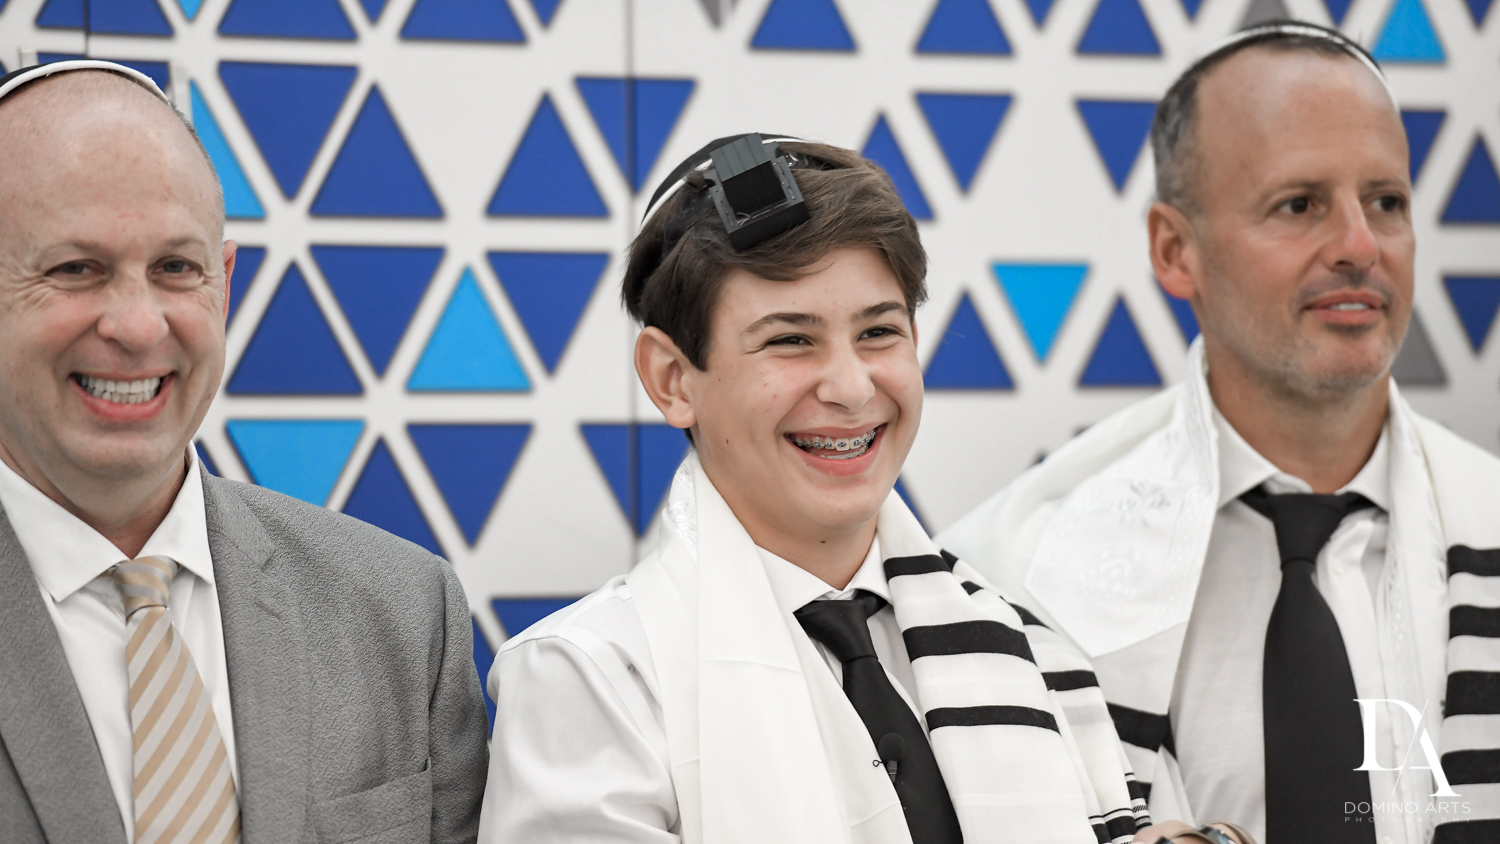 happy boy at Monochrome Bar Mitzvah Ceremony at Aventura Chabad by Domino Arts Photography